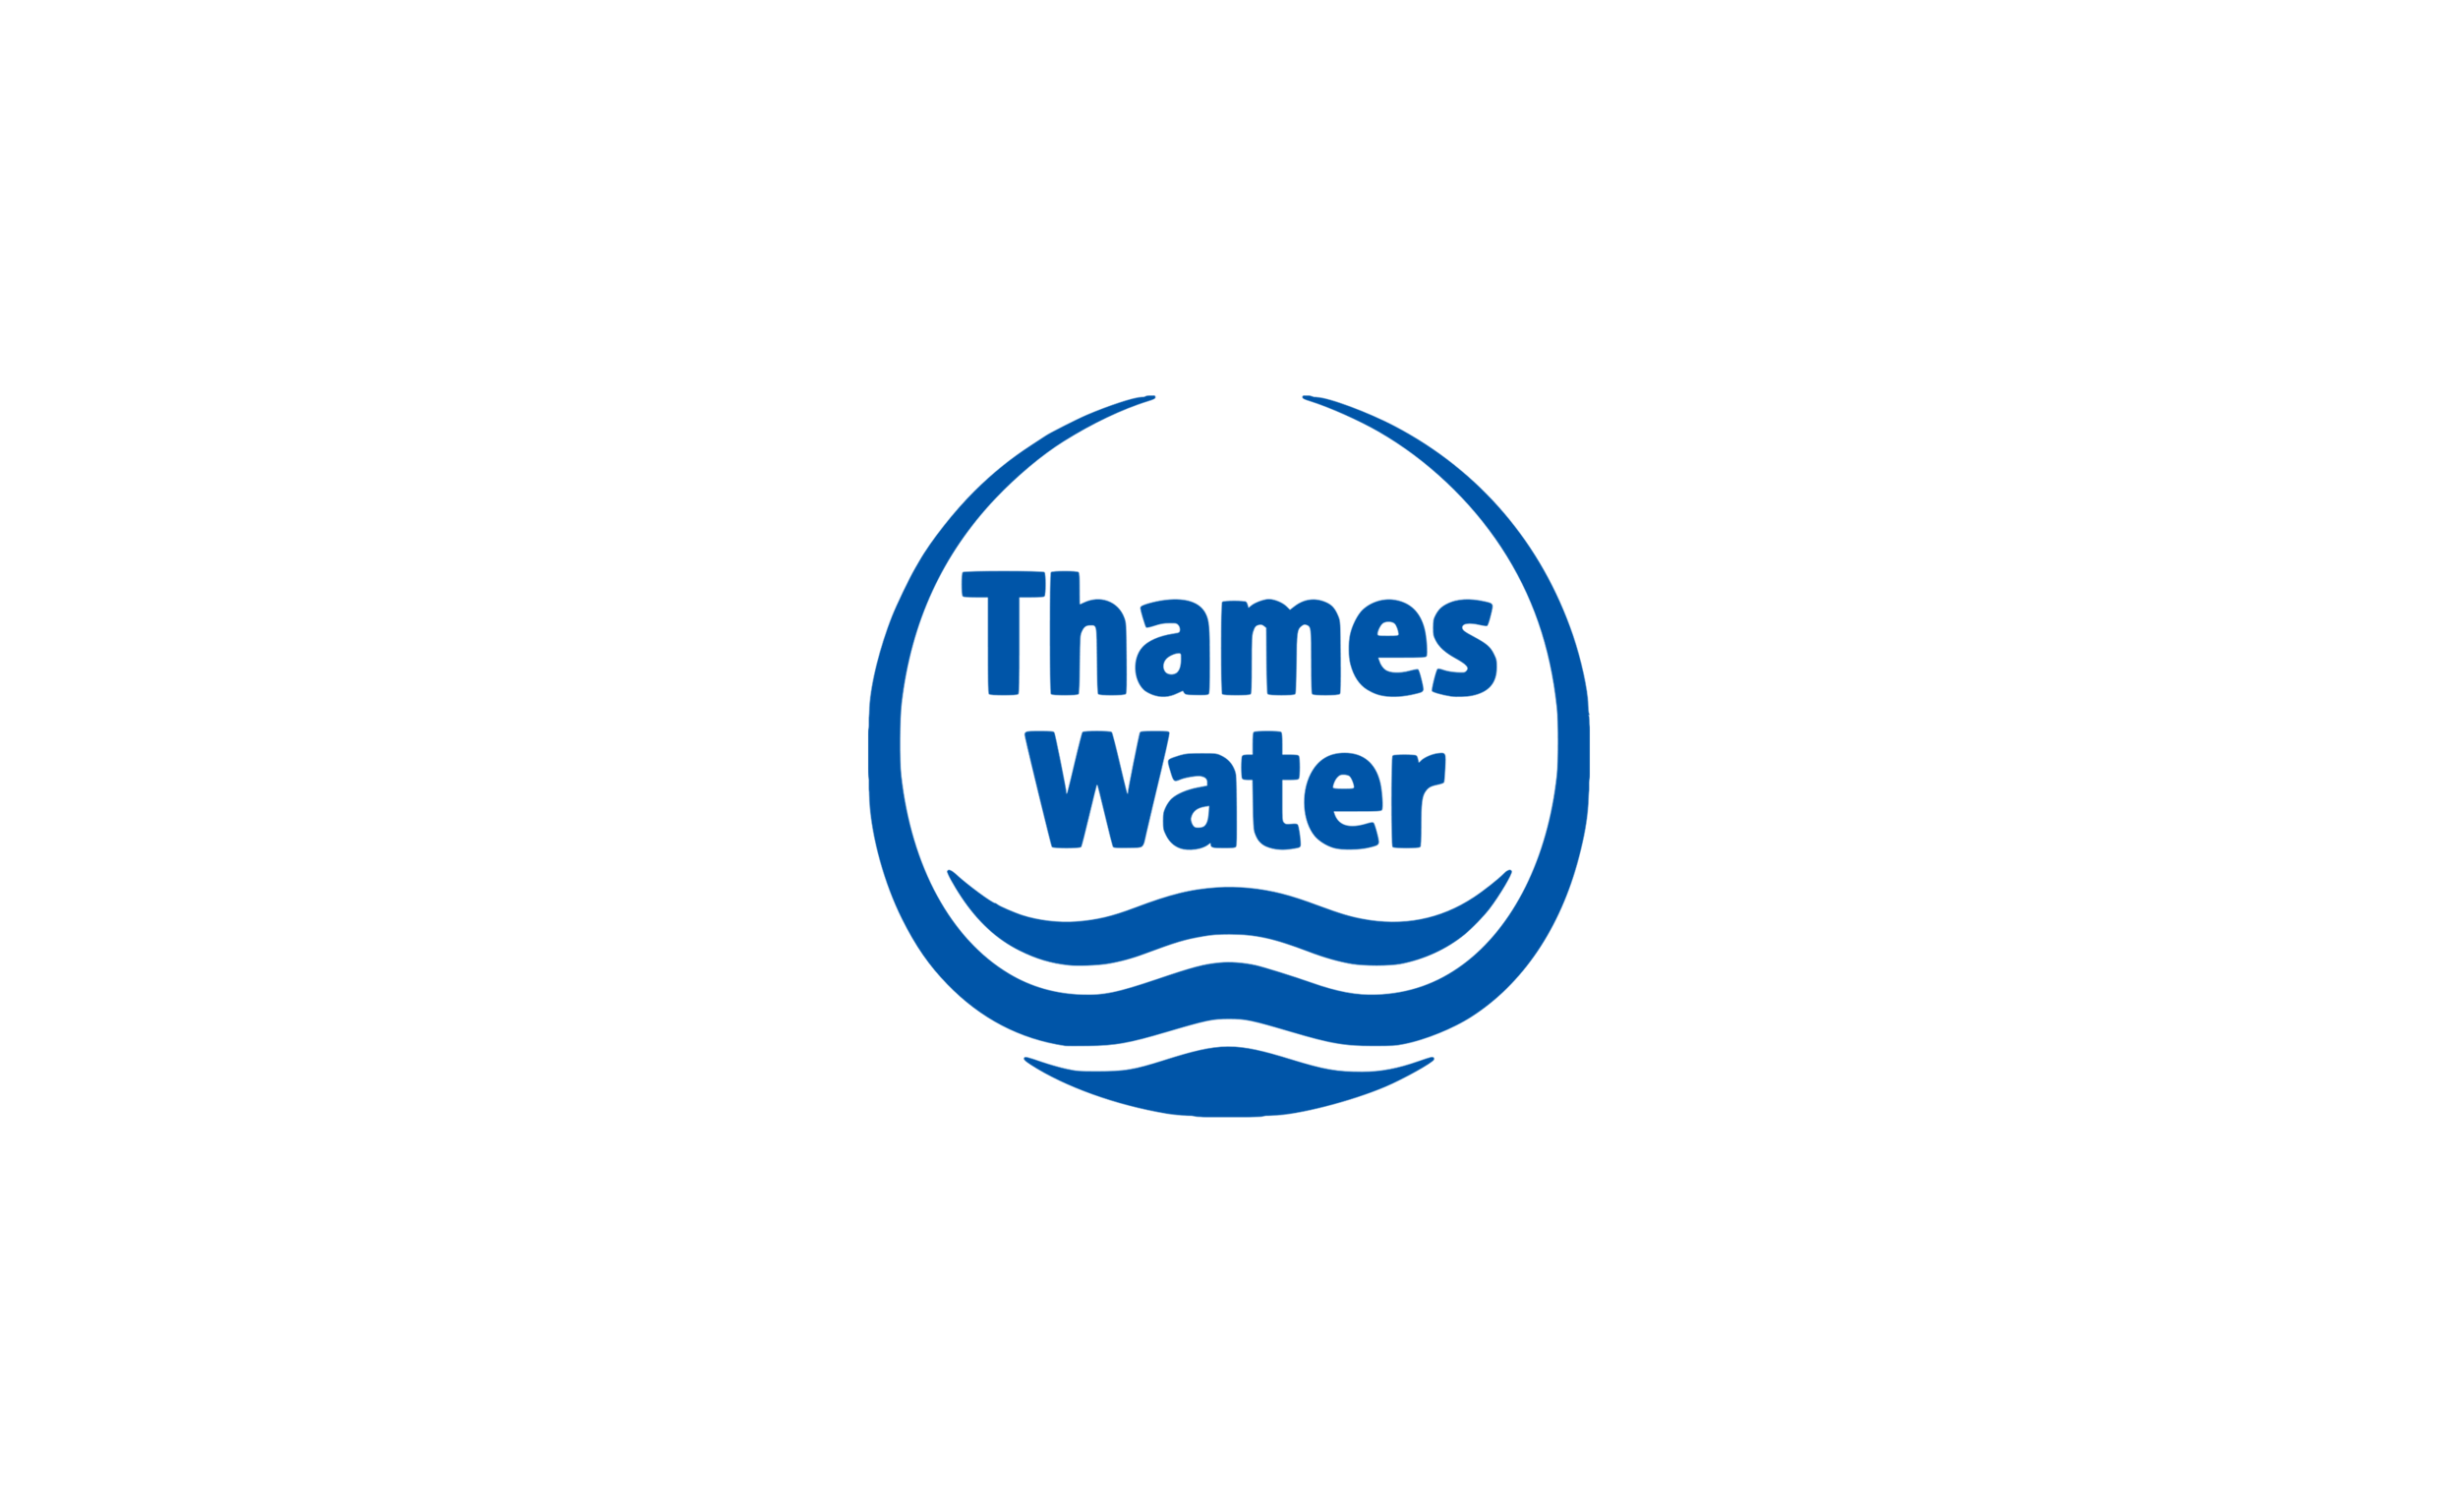 Thames-Water.png